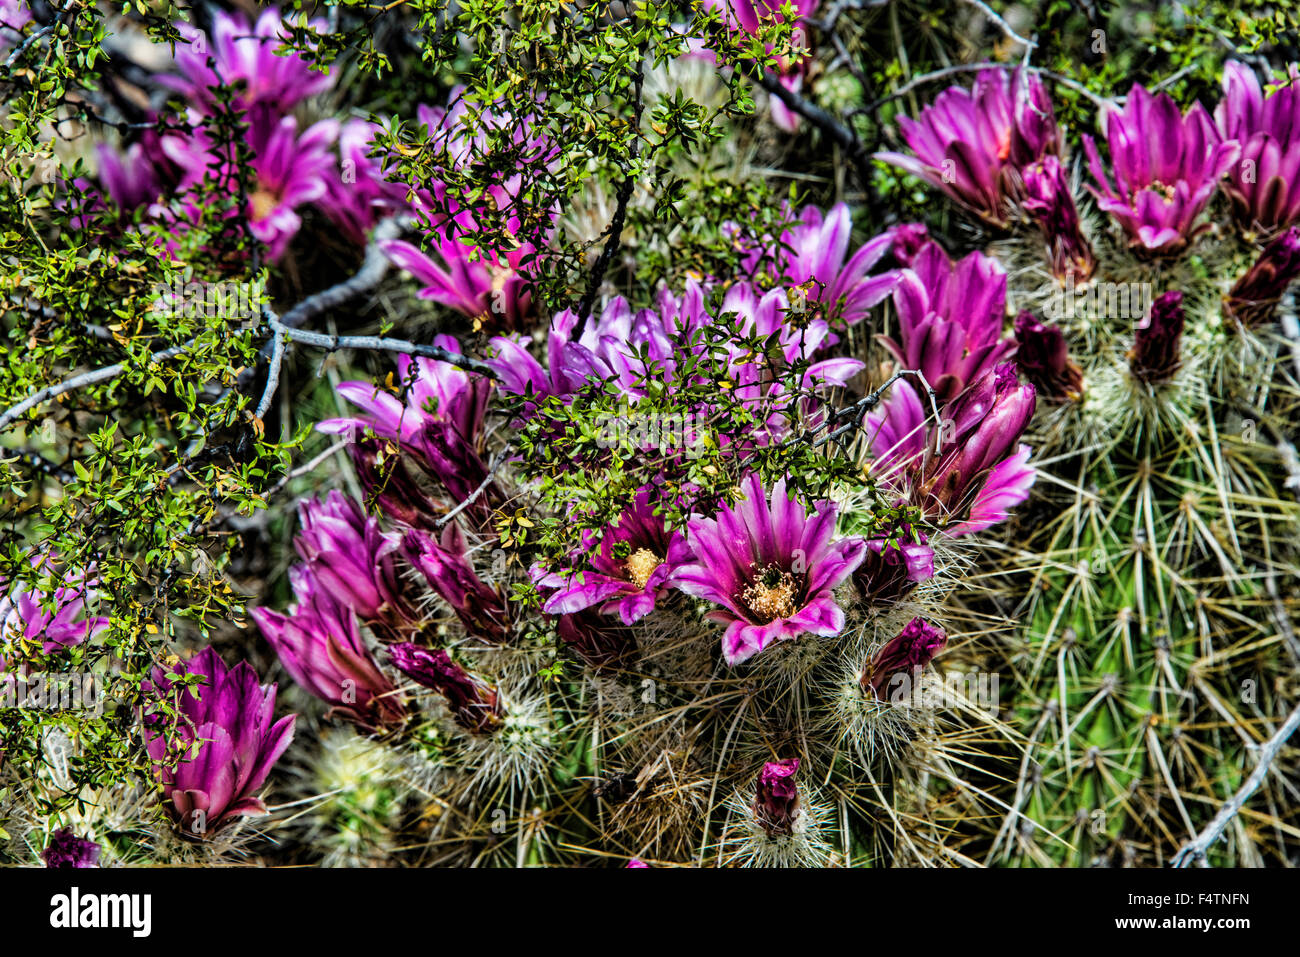 hedgehog cactus, cactus, bloom, Echinocereus spp., Arizona, USA, America, plant - Stock Image